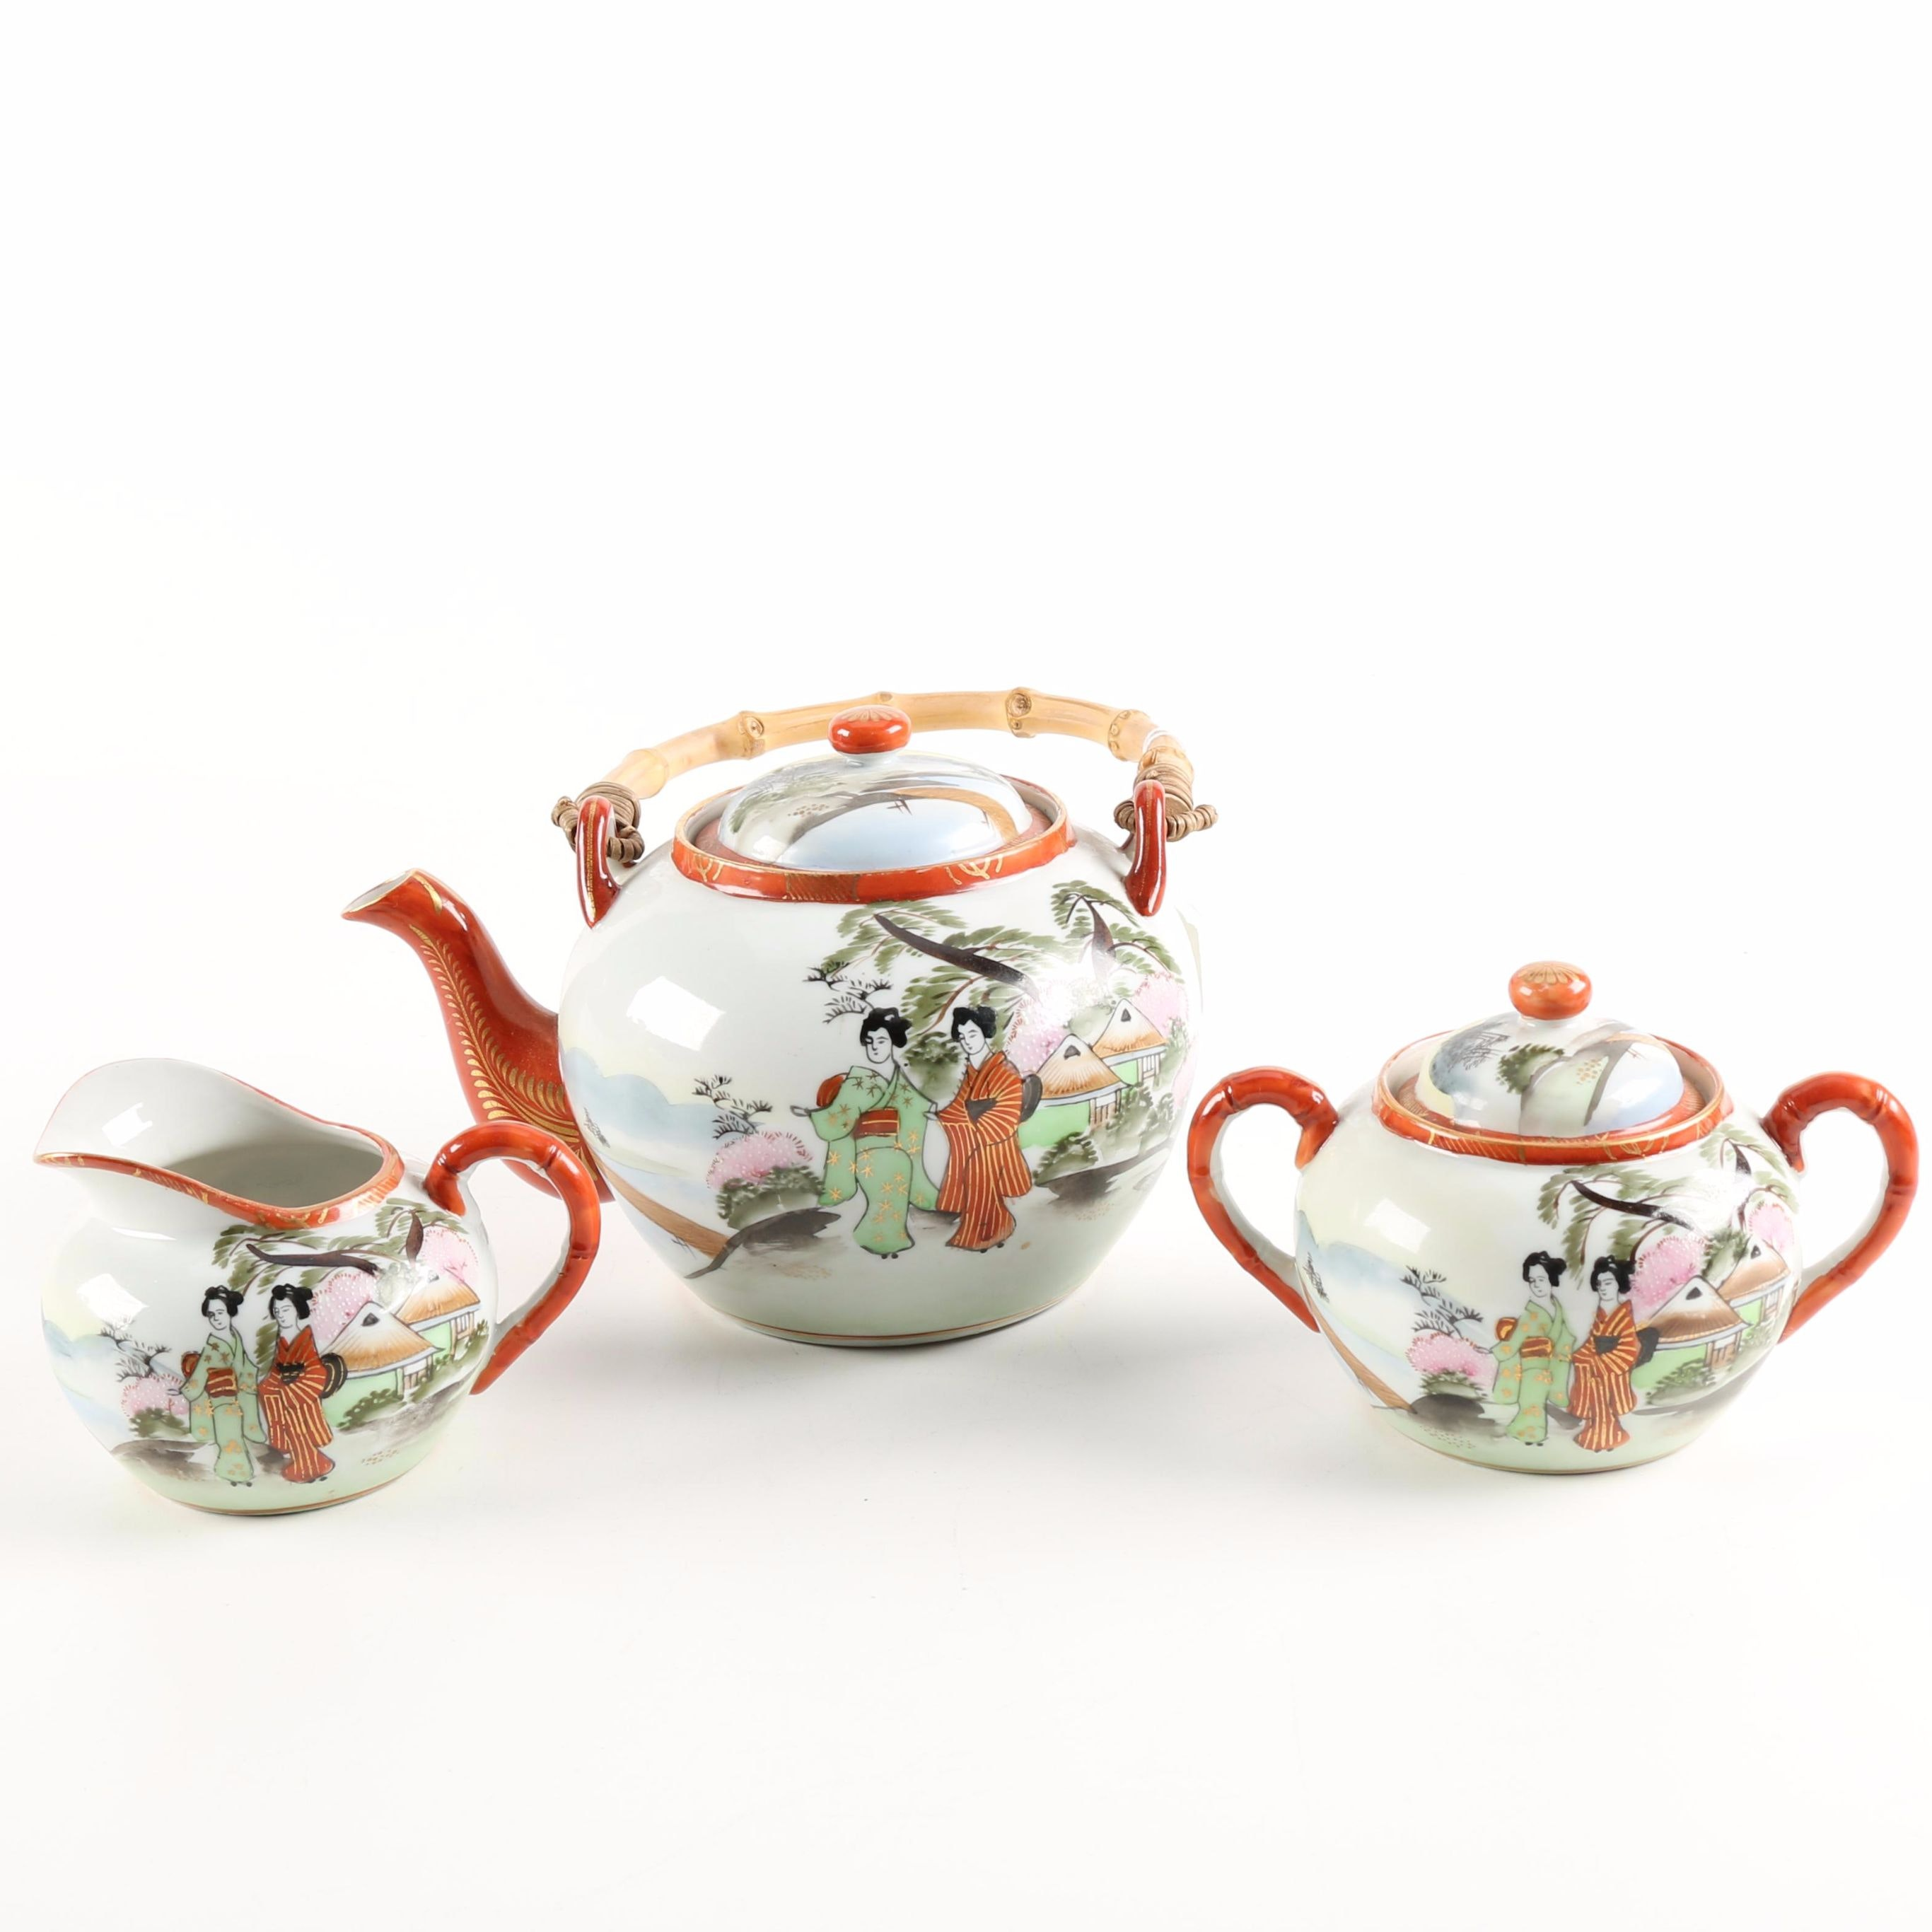 Hand Painted Japanese Porcelain Tea Set